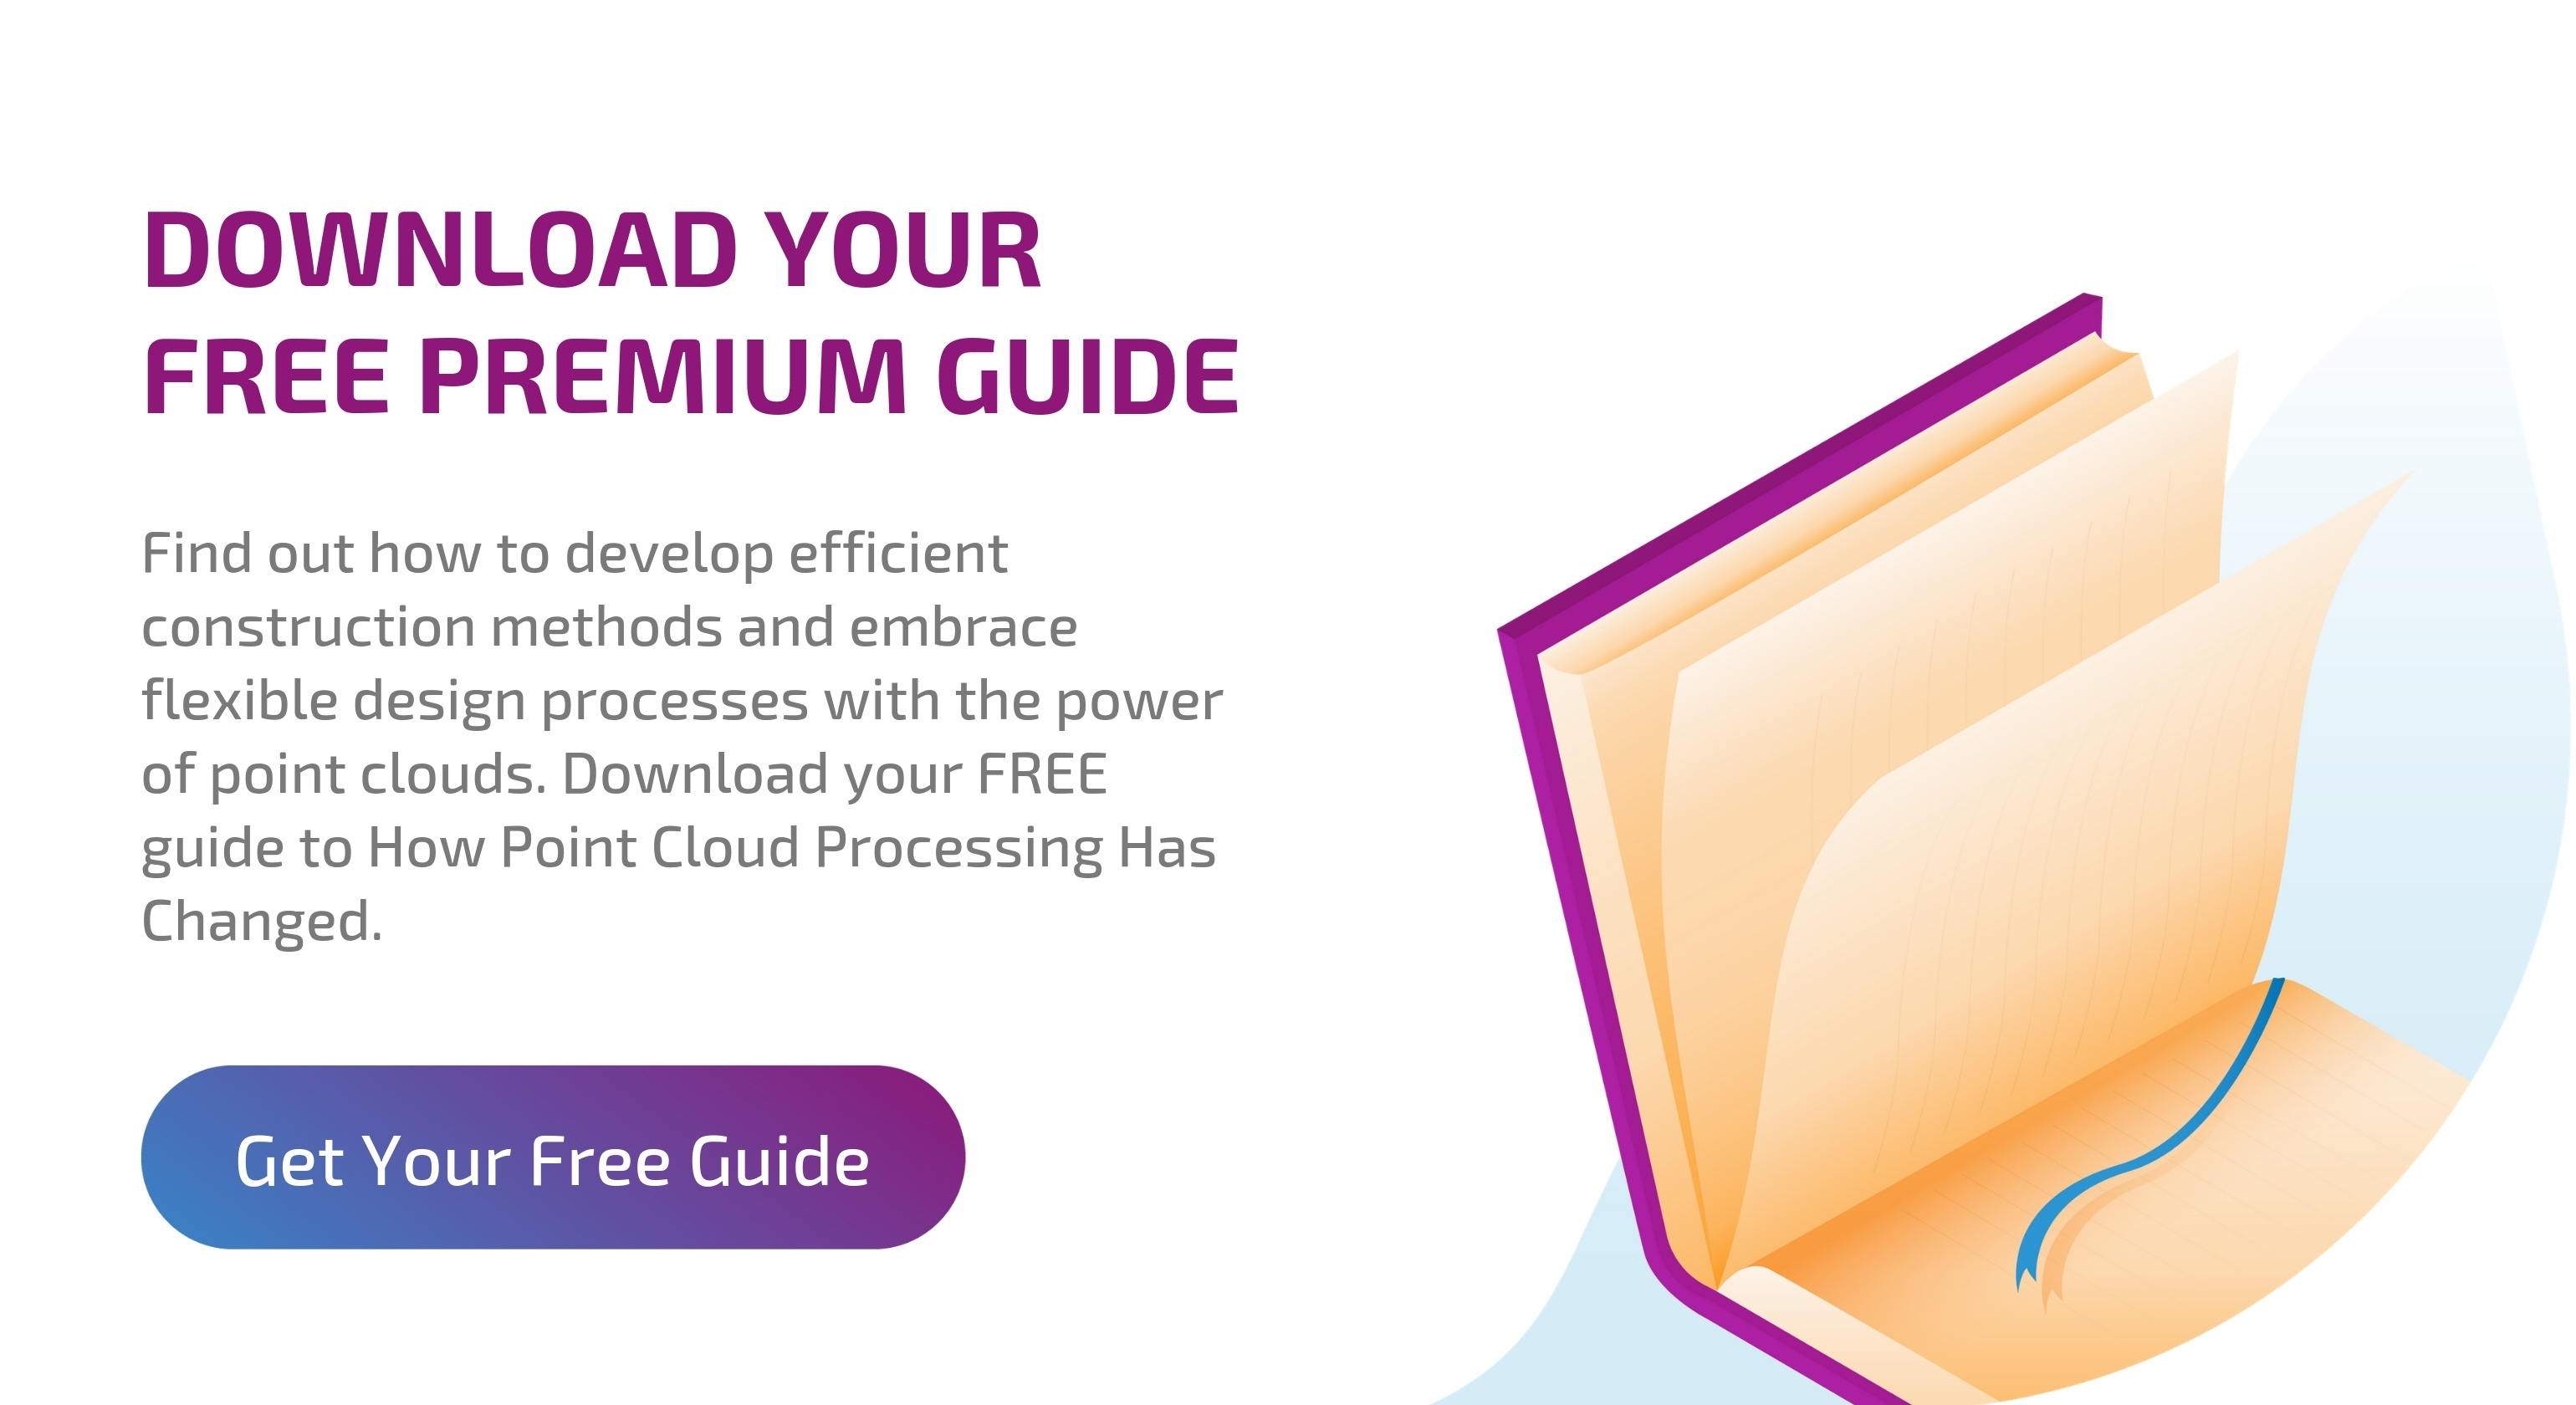 Download your free premium guide